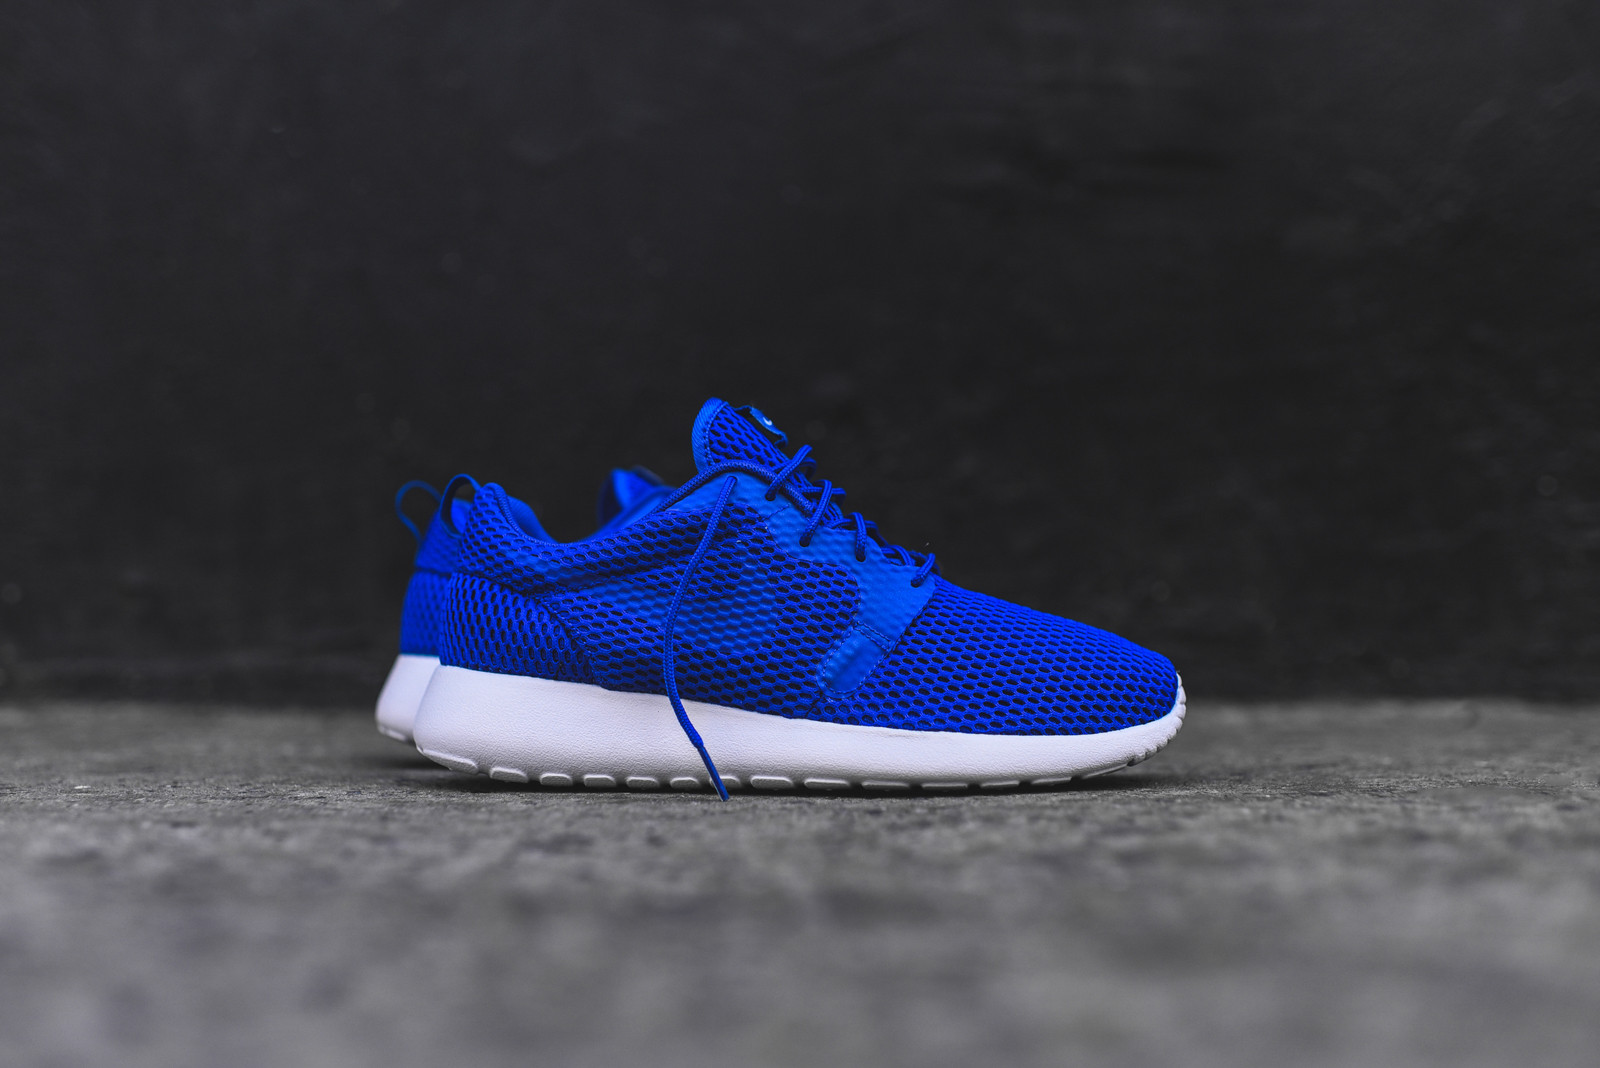 timeless design e44d3 709a9 Very Goods | Nike Roshe One HYP BR - Racer Blue | Kith NYC